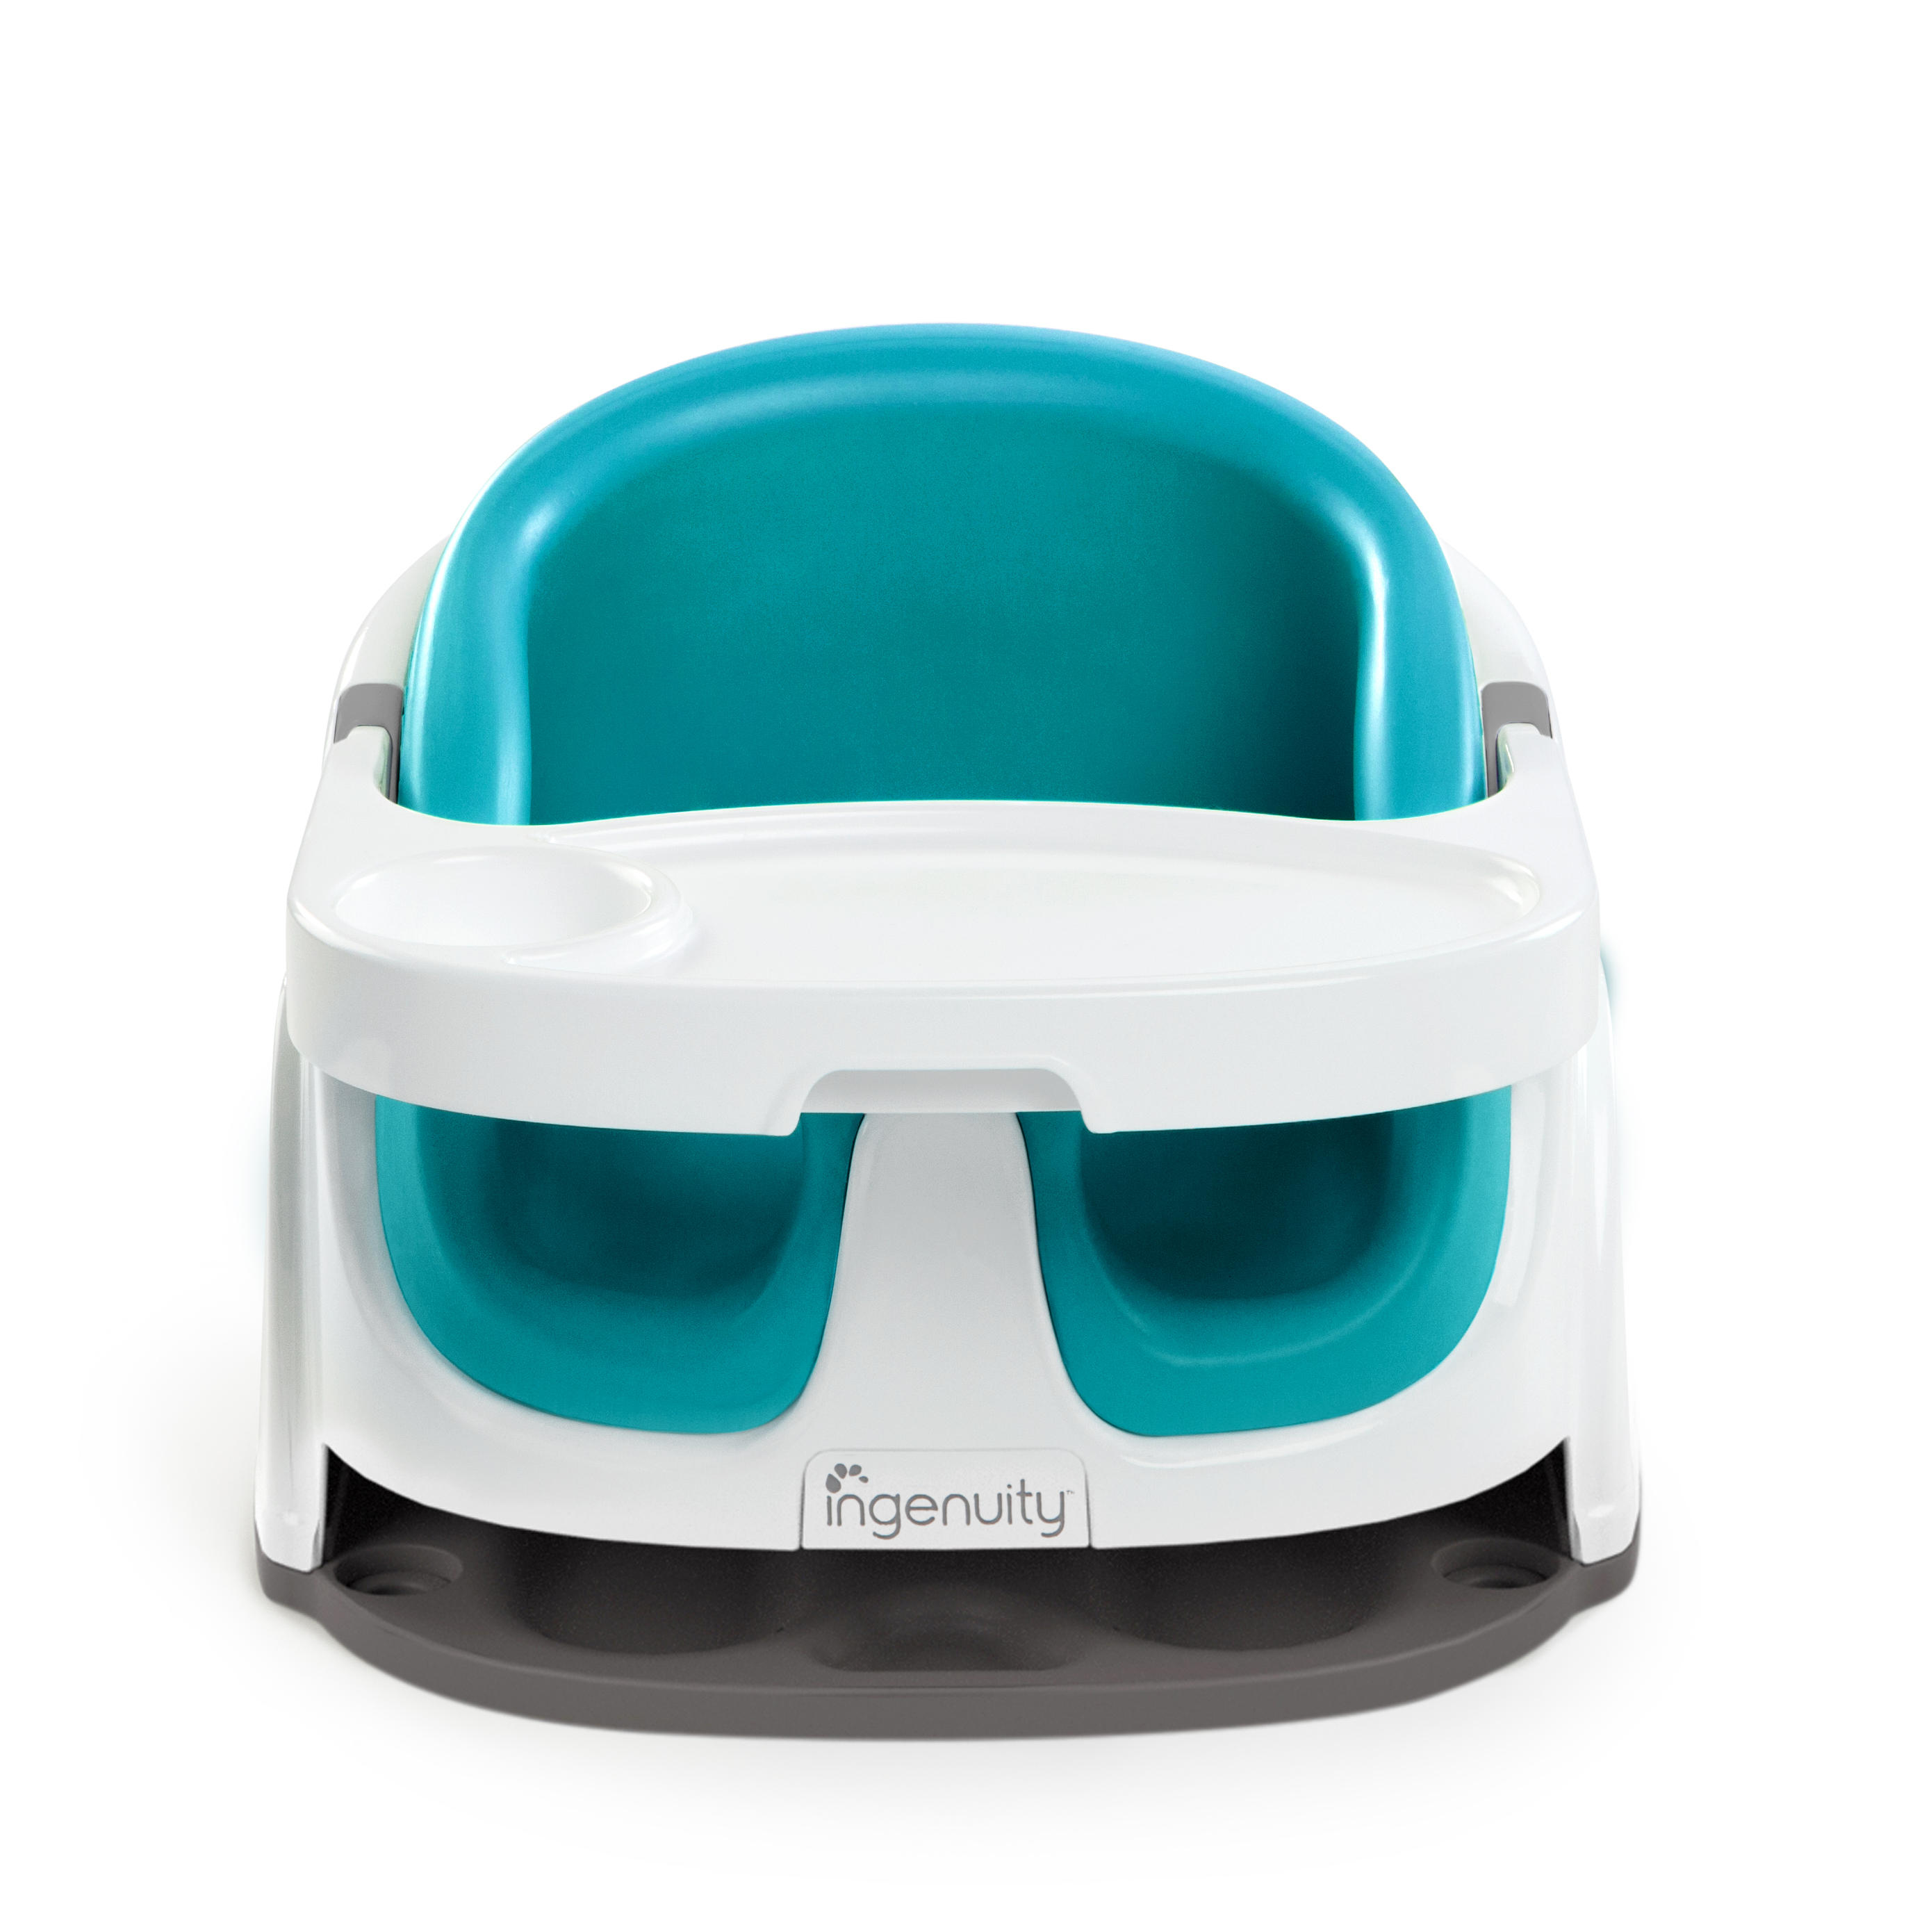 Baby Seats Baby In Bath That Can Sit Up